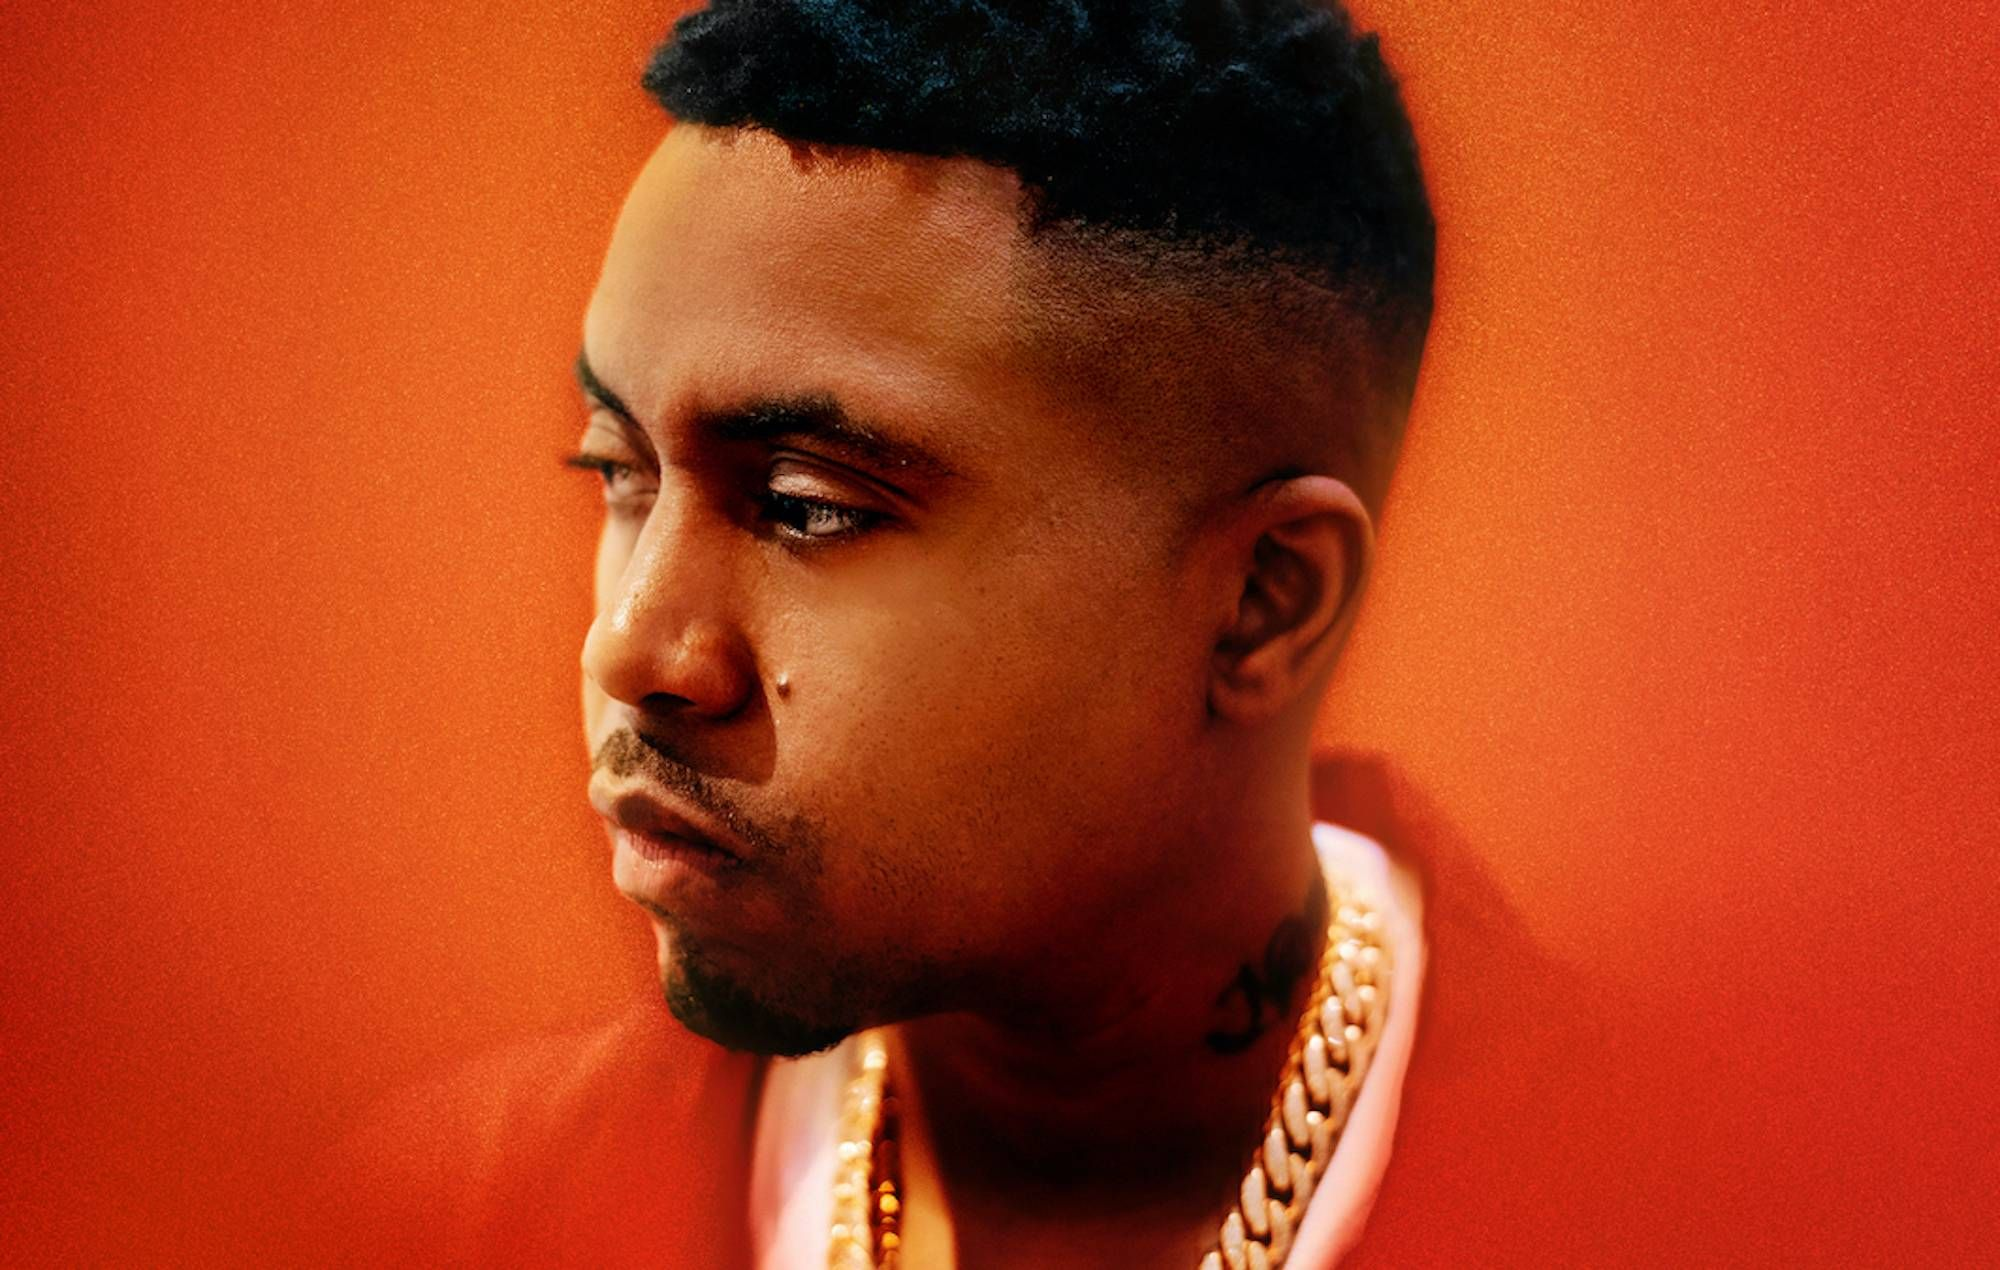 1629503375 The NAS case vs the rap music industry the foundations